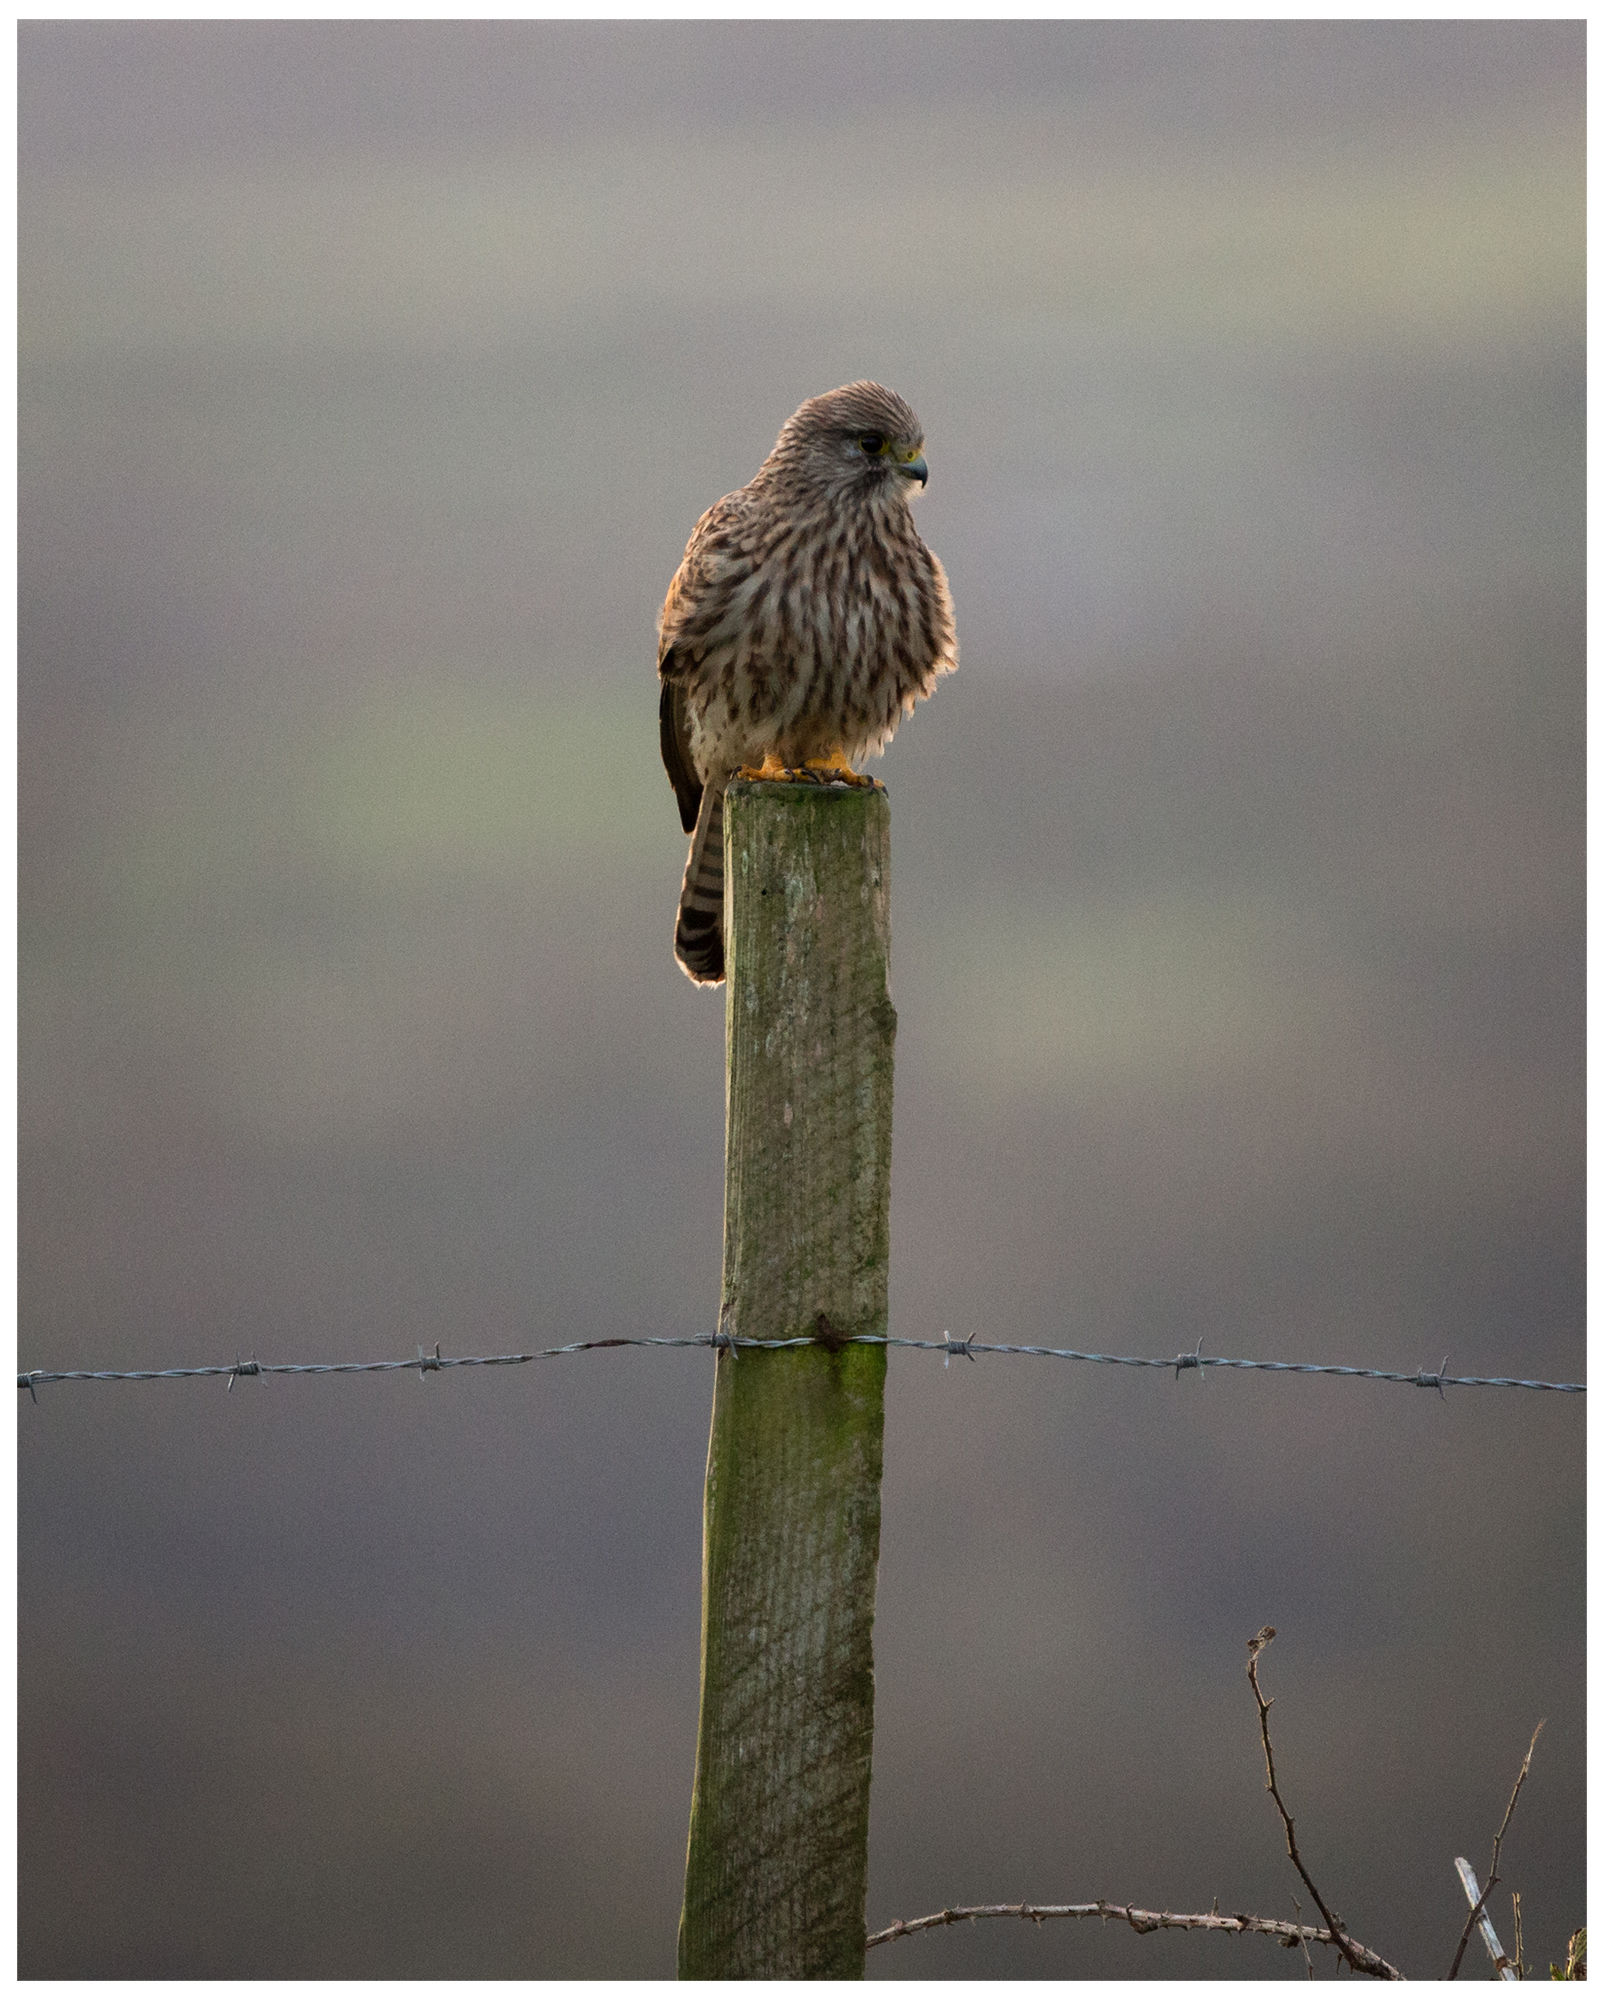 Always loved birds and especially birds of prey, so I'm fortunate to see Kestrels and Buzzards regularly up Carn Marth